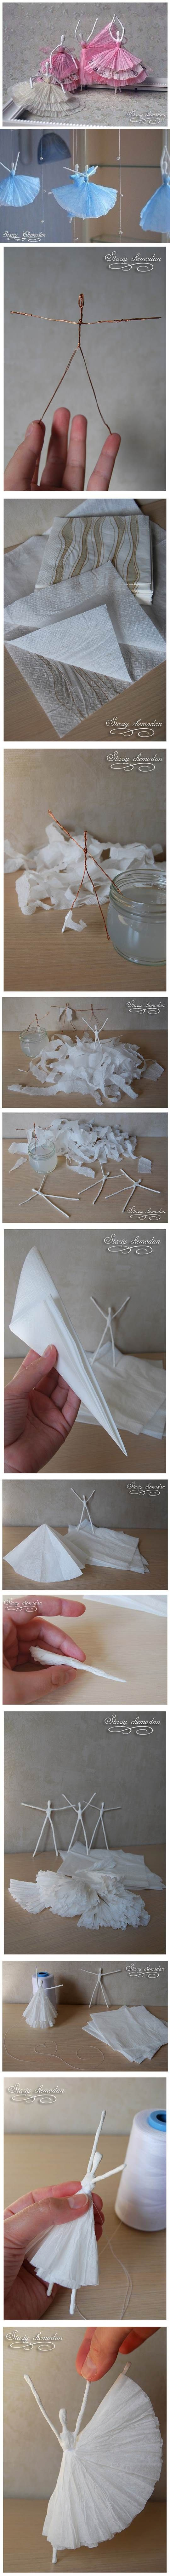 DIY Napkin Paper Ballerina | iCreativeIdeas.com LIKE Us on Facebook ==> https://www.facebook.com/icreativeideas: